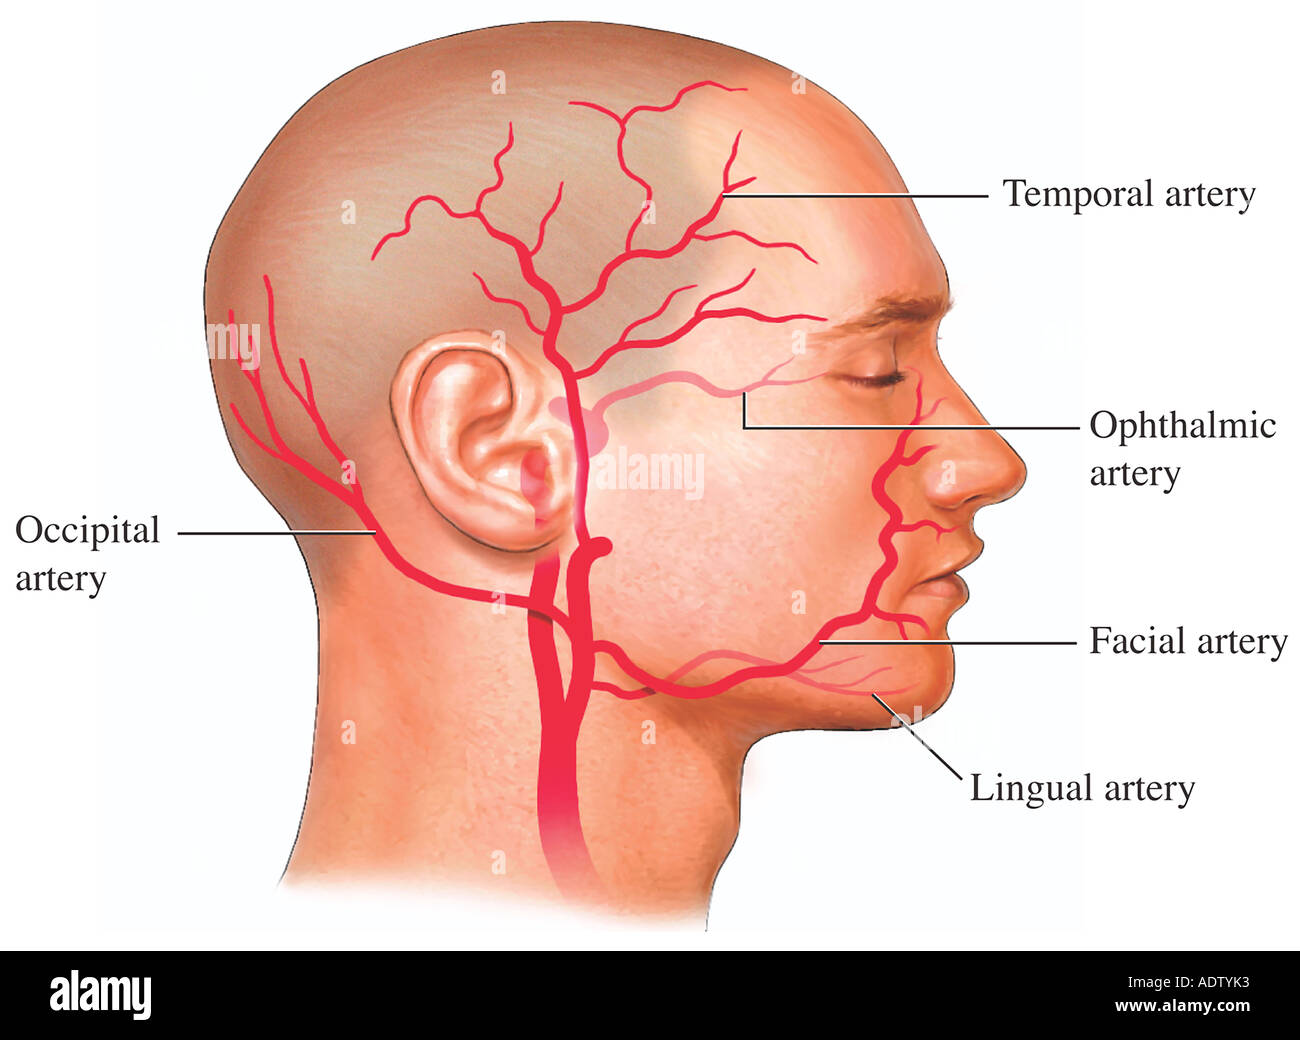 Lingual Artery Stock Photos Lingual Artery Stock Images Alamy